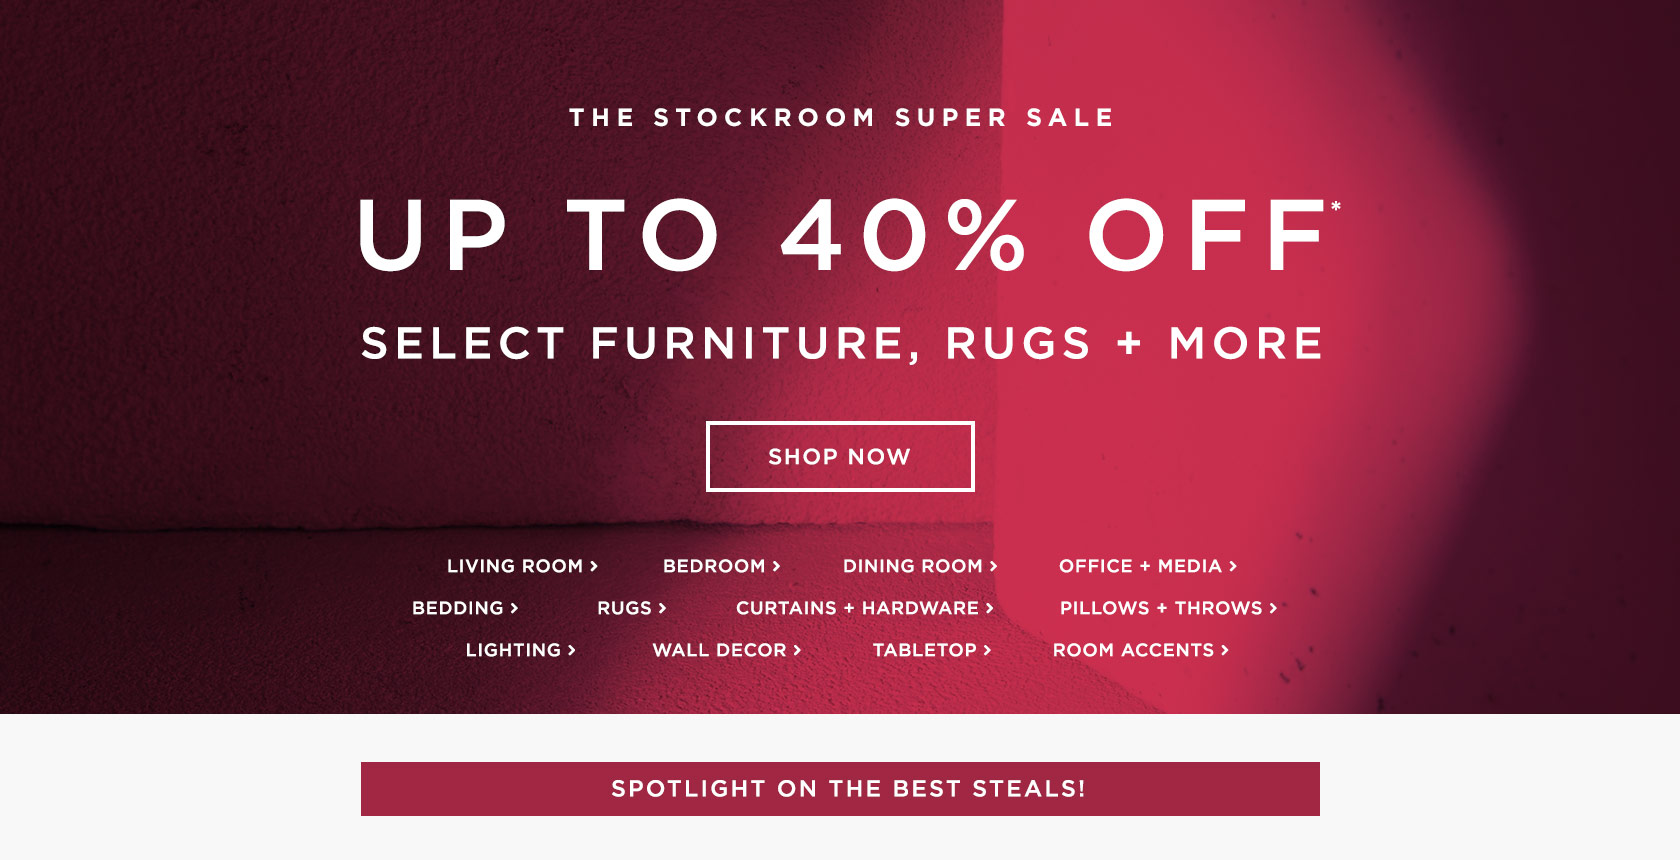 The Stockroom Super Sale: Up To 40% Off Select Furniture, Rugs + More